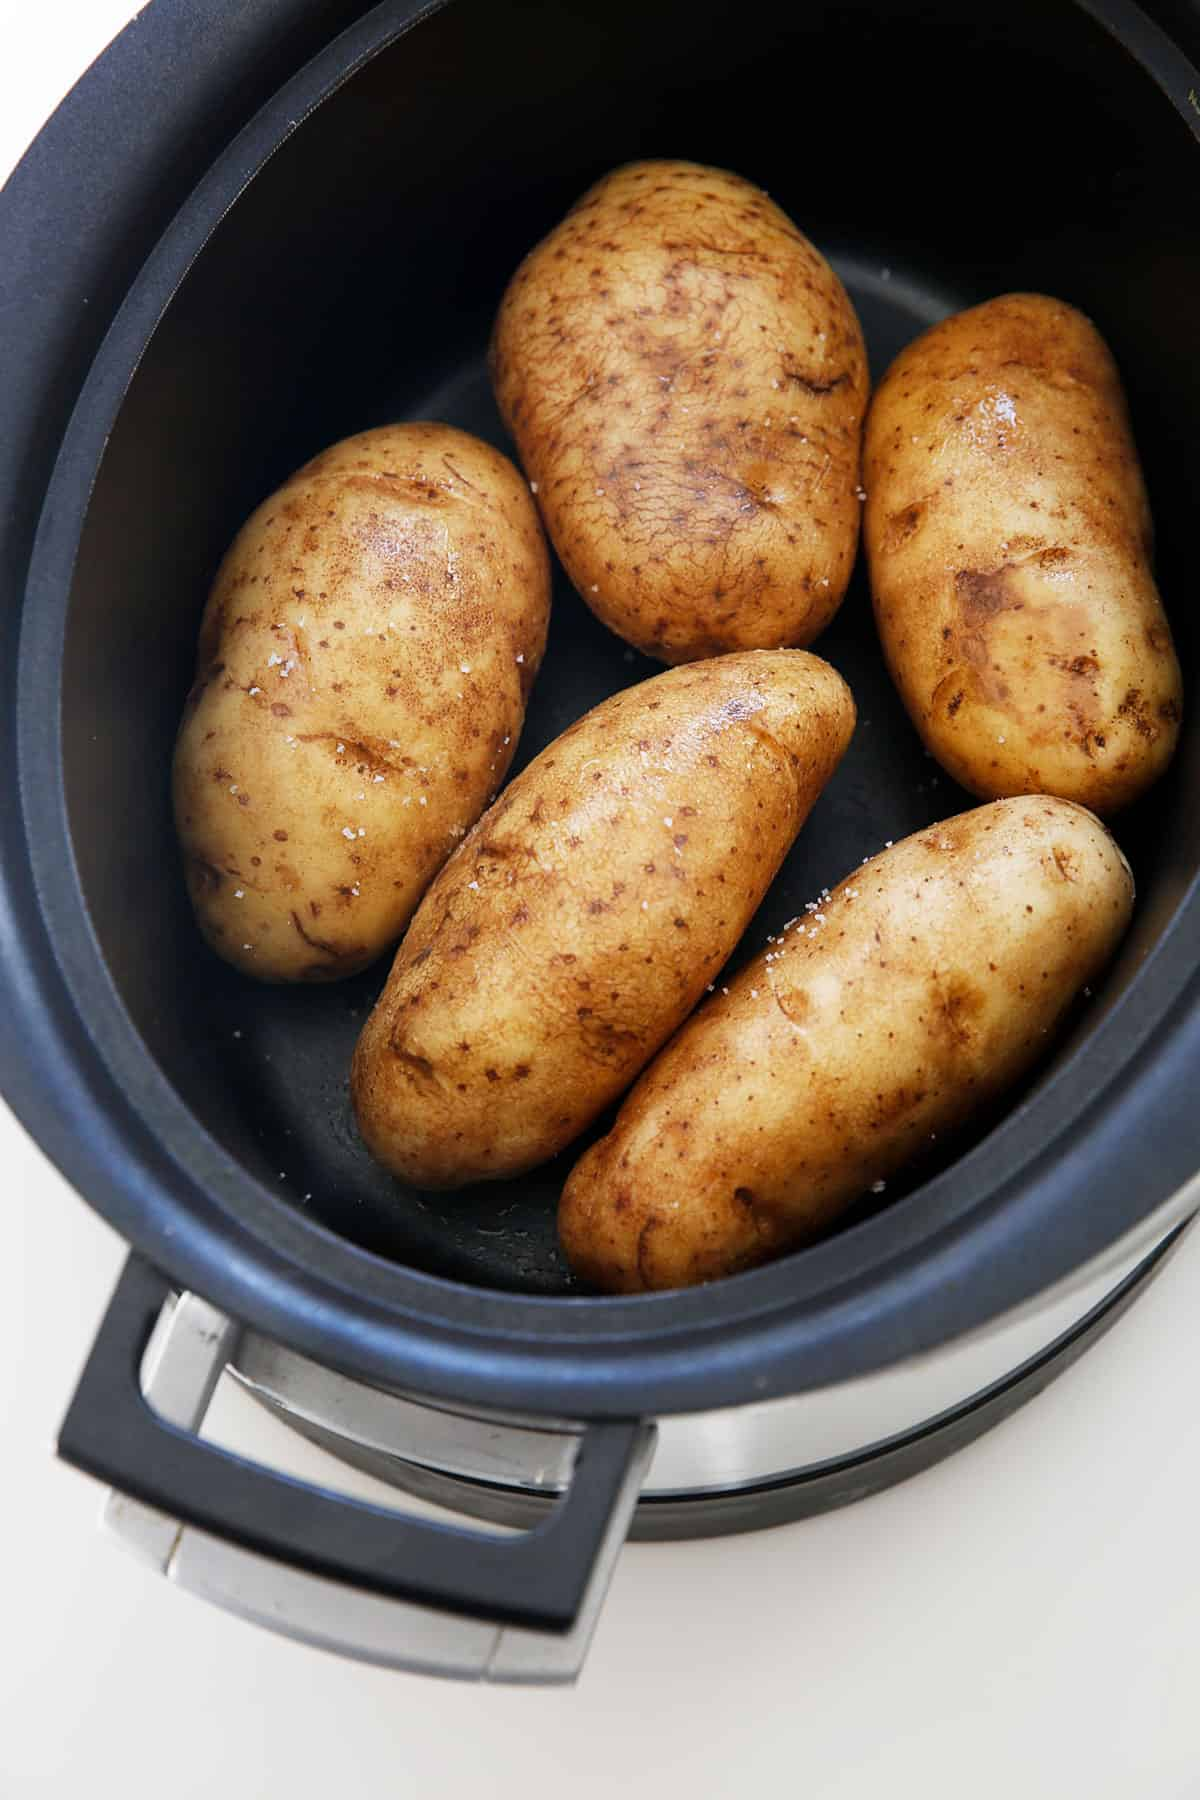 baked potatoes in the slow cooker ready to cook